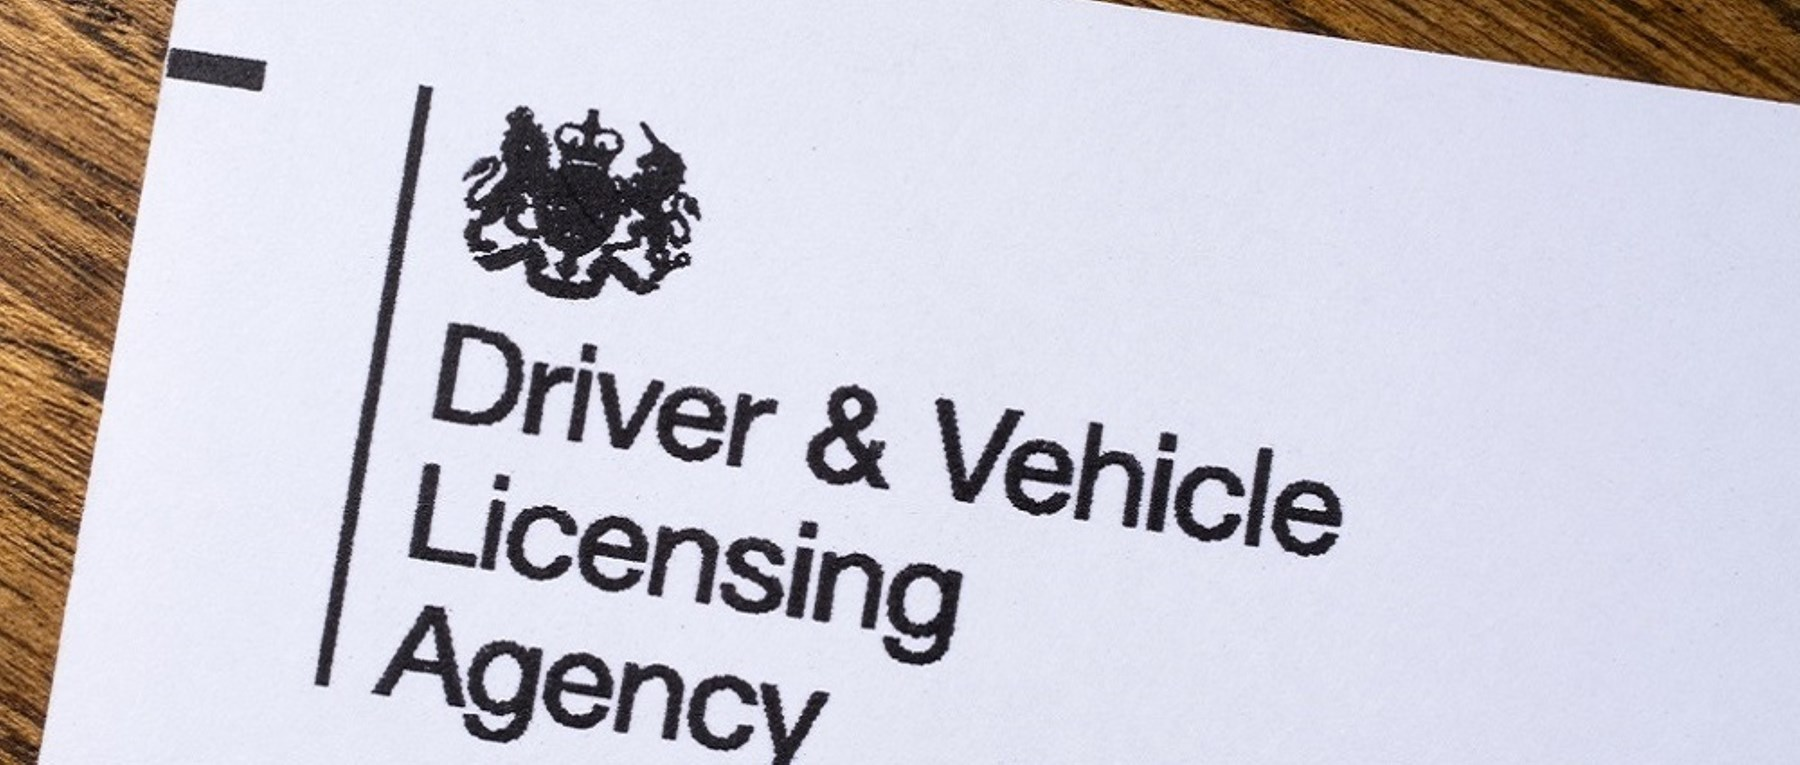 The header of a letter from the DVLA